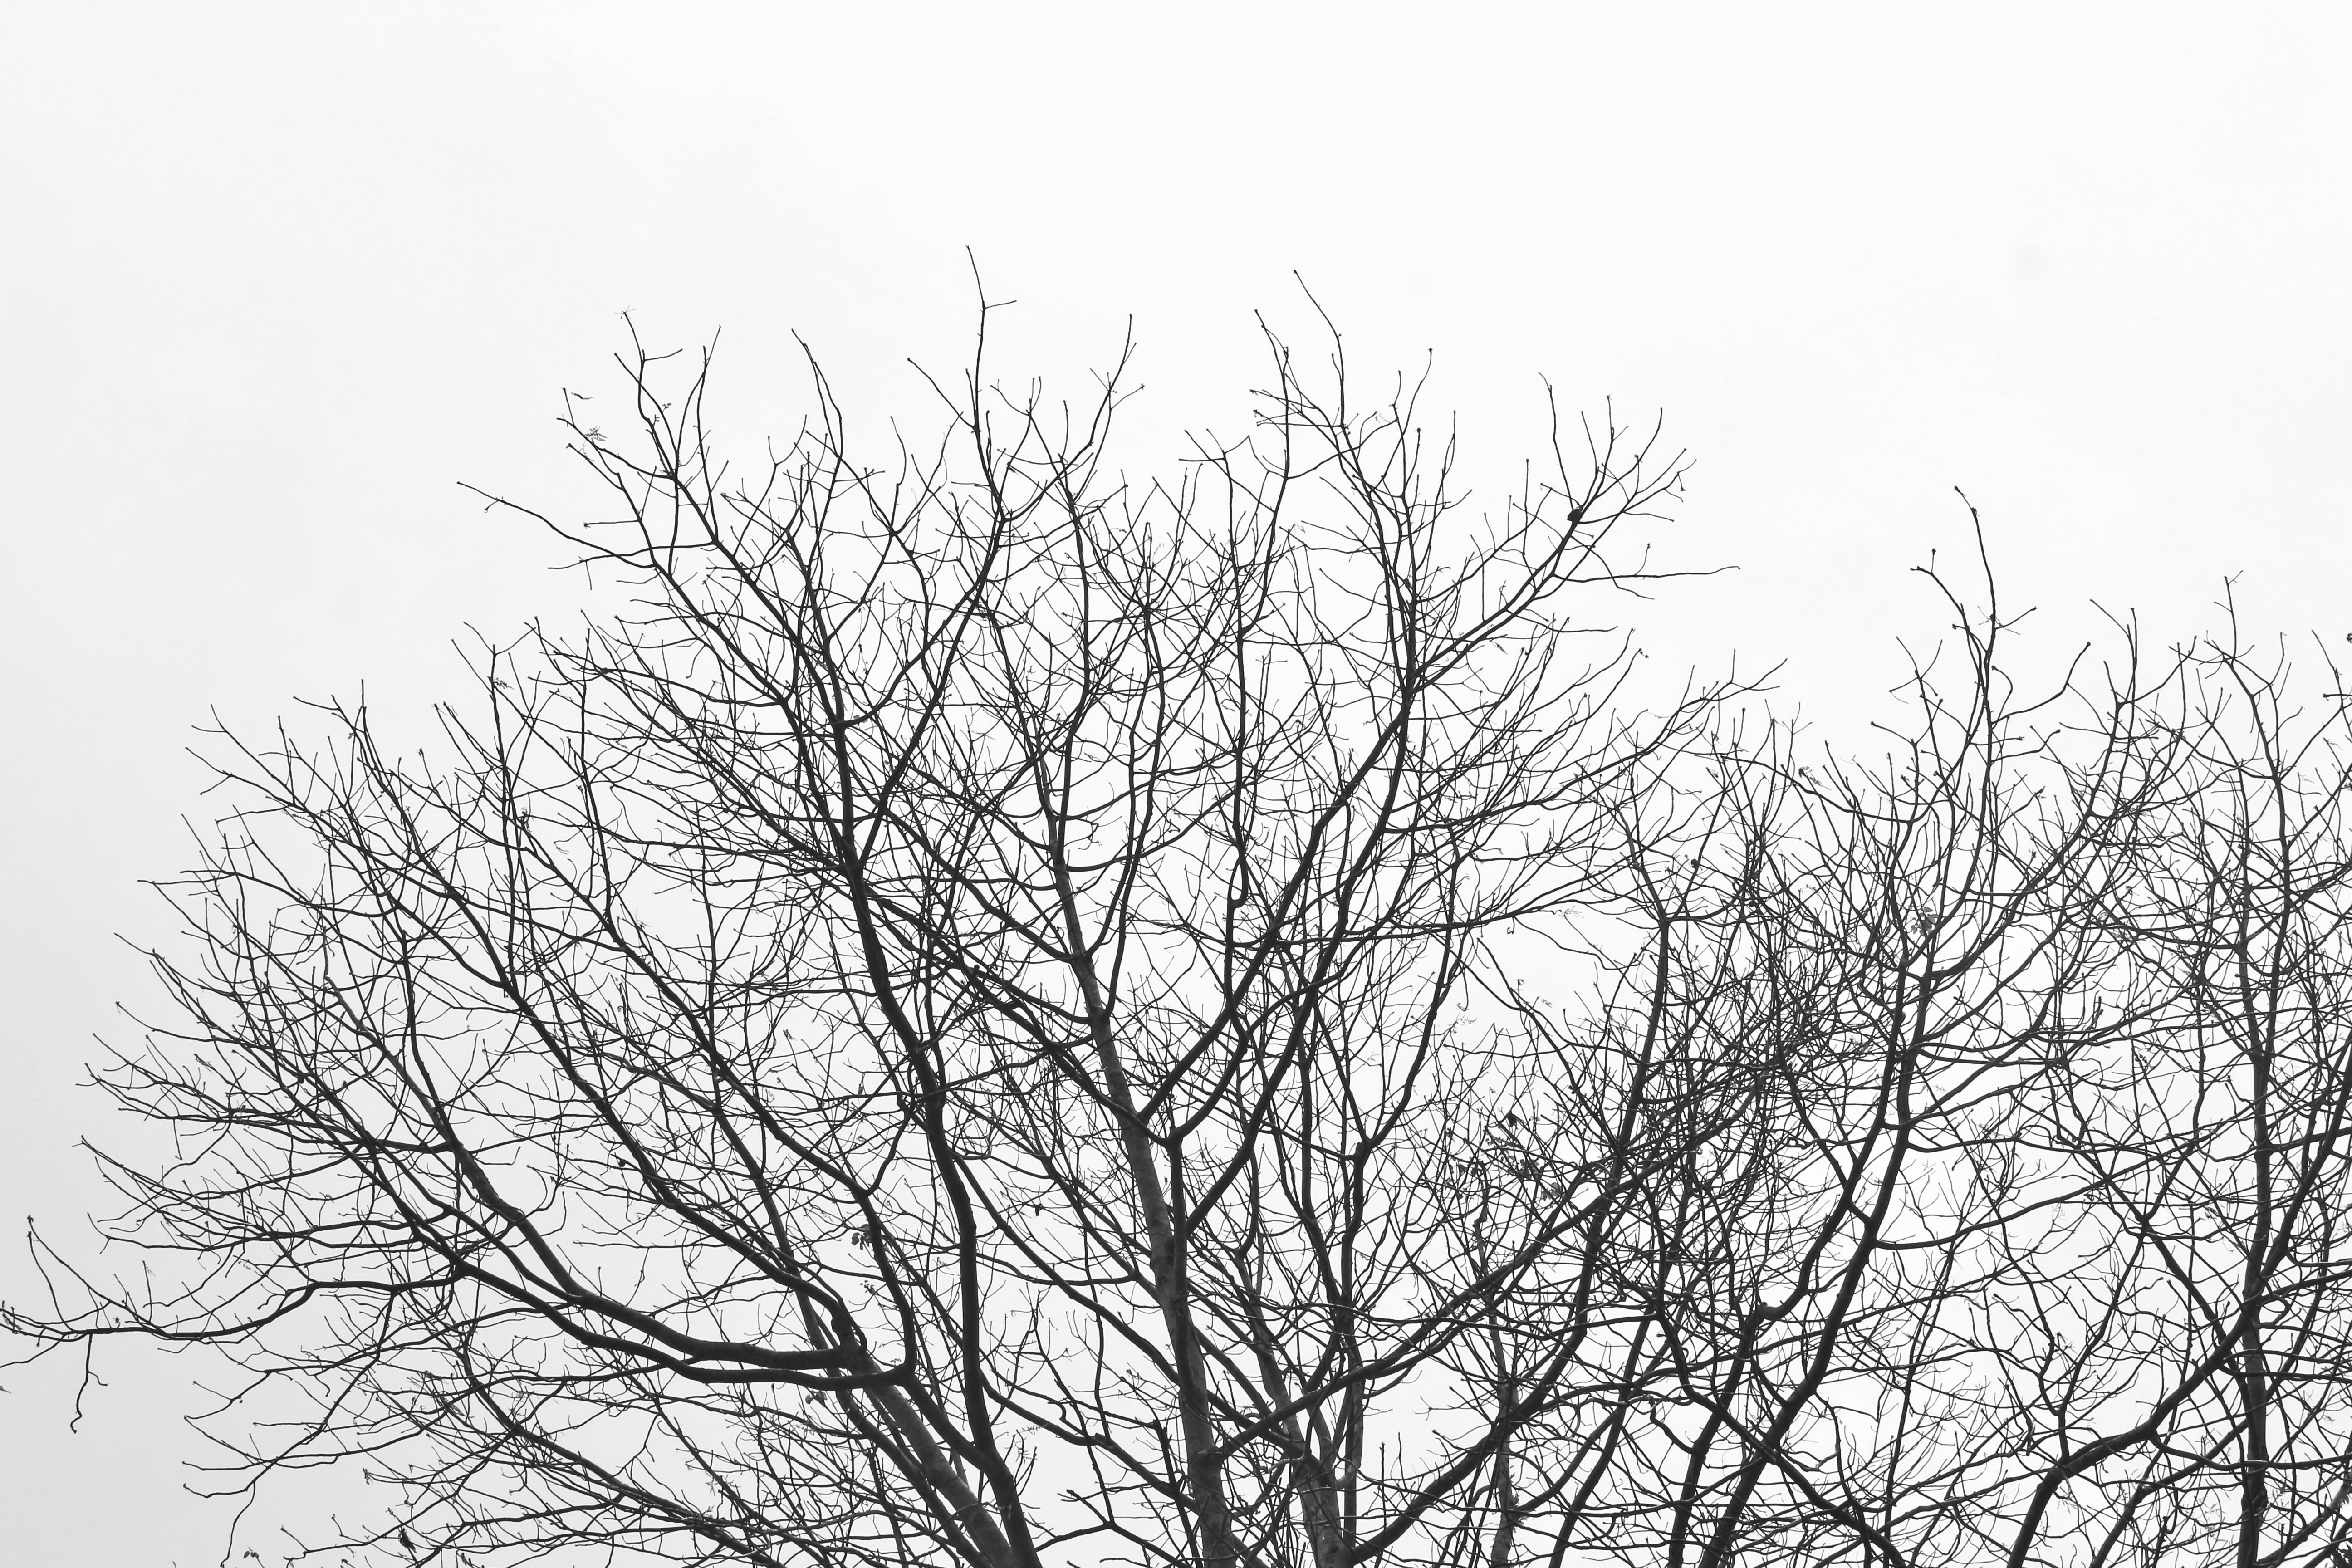 Free stock photo of abstract, black-and-white, branch, branches